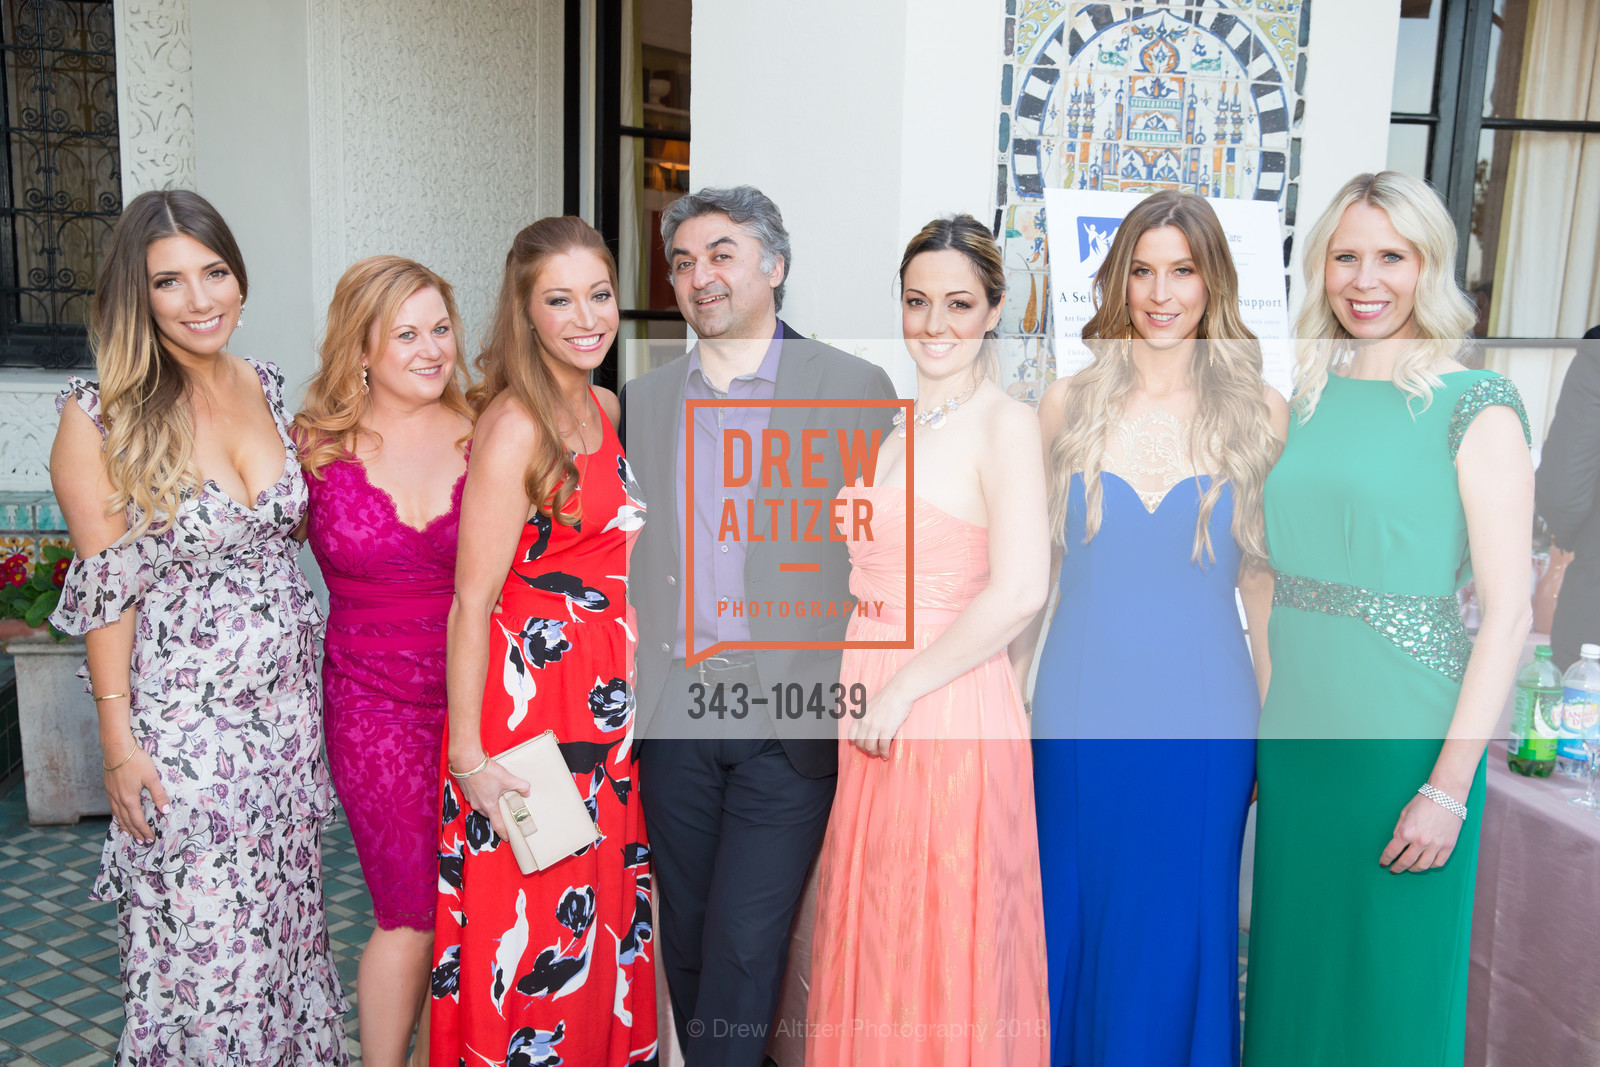 Brianna Haag, Colleen Crush, Whitney Hudak, Hooman Khalili, Kelly Jackson, Lauren Duffy, Kristin Nevius, UCSF Partners in Care Soiree 2018, The Fairmont Nob Hill, April 14th, 2018,Drew Altizer, Drew Altizer Photography, full-service agency, private events, San Francisco photographer, photographer california